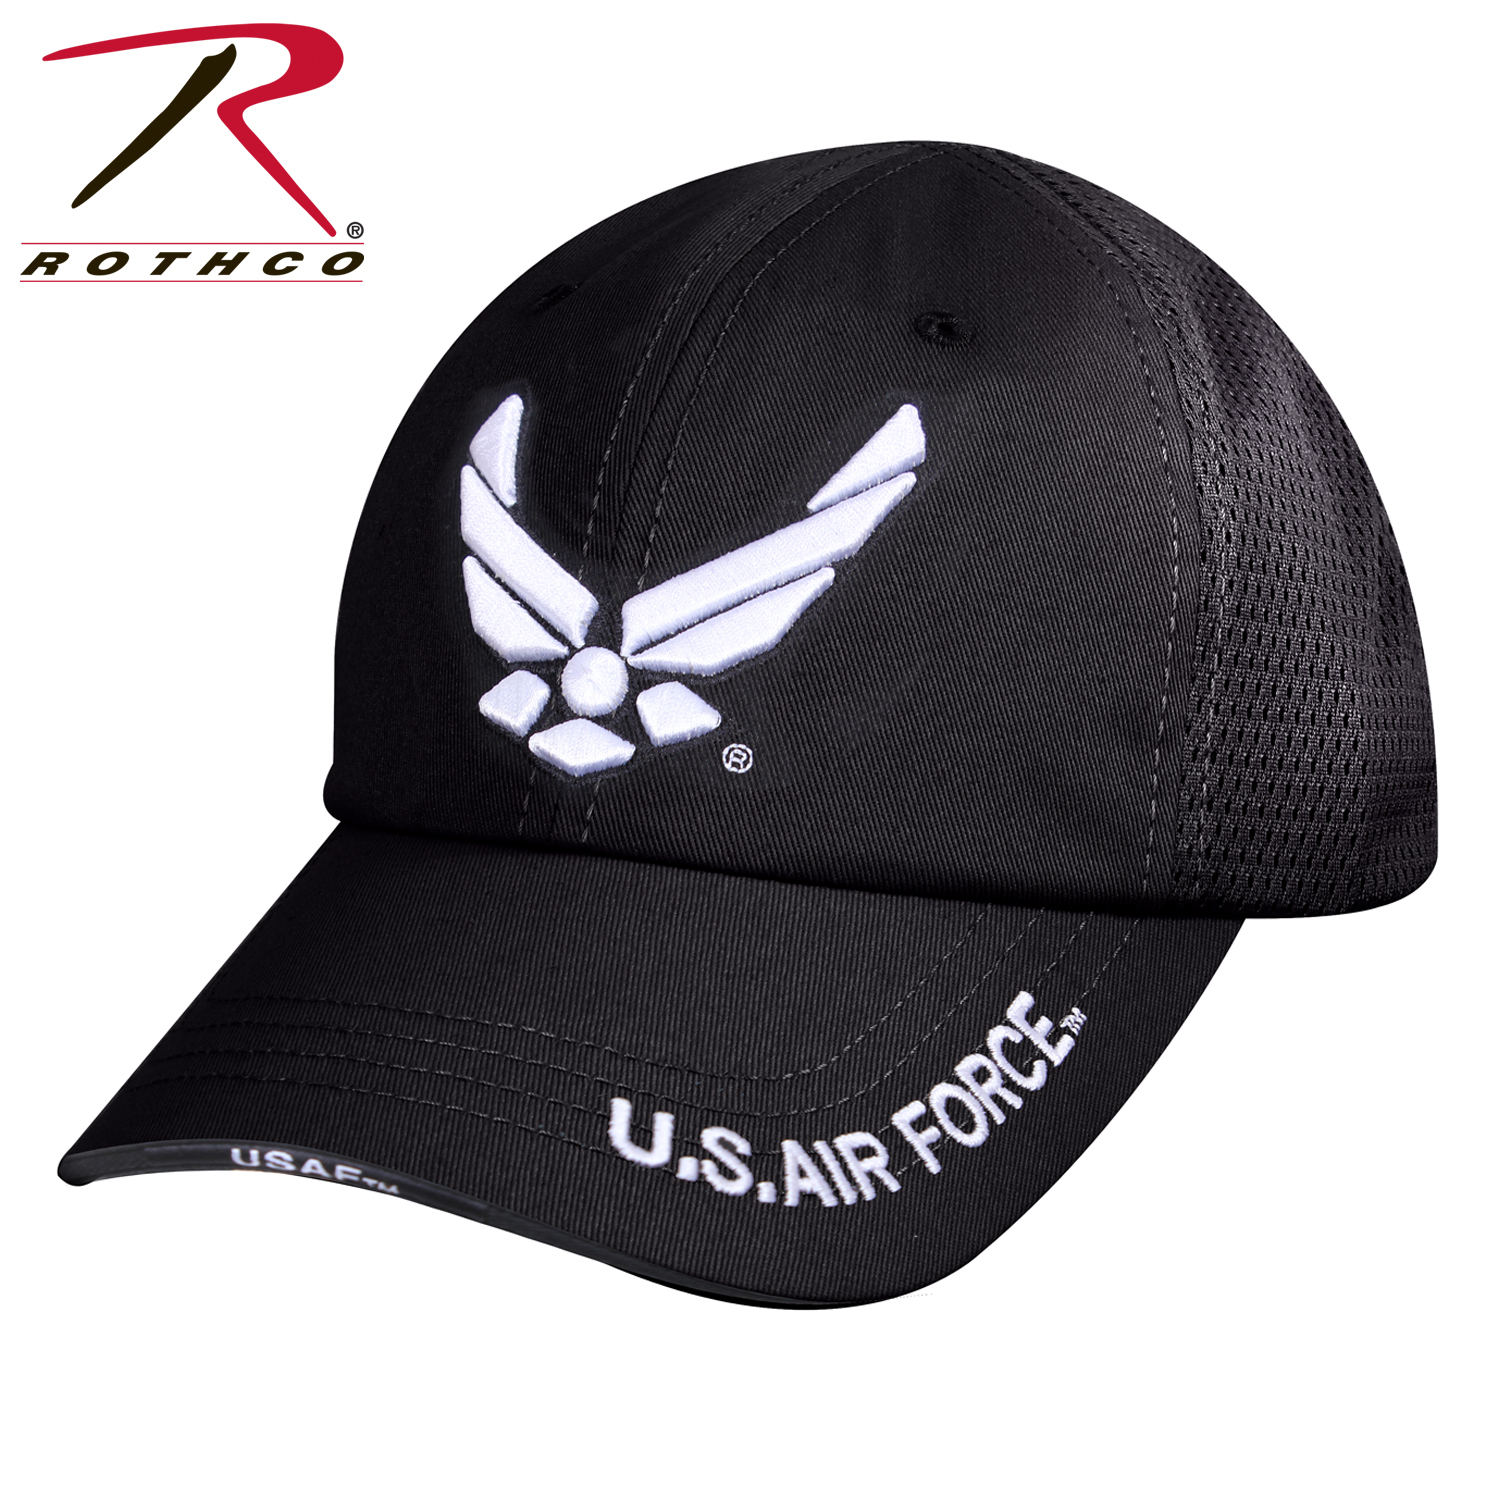 be36bd2b642 Rothco Mesh Back Tactical United States Air Force Wing Cap